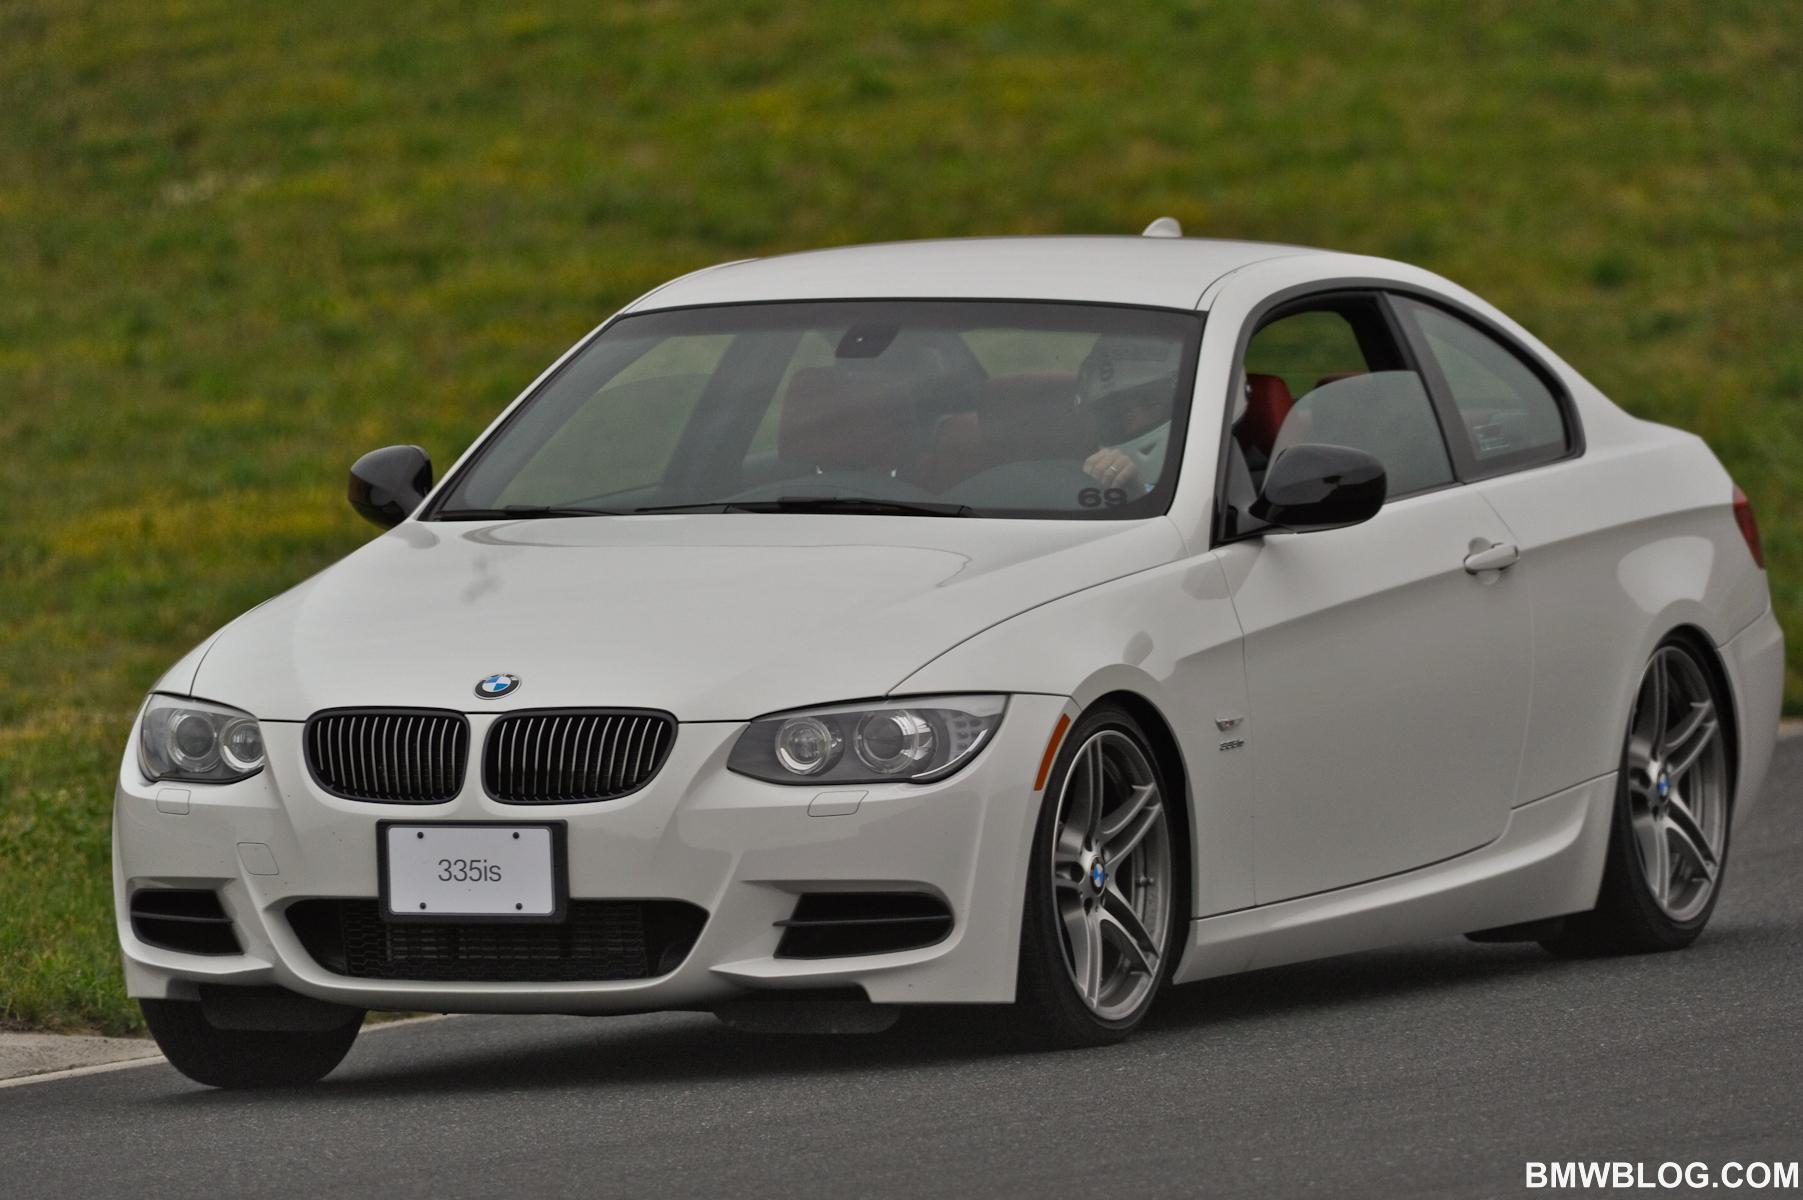 Bmwblog Ontrack Comparison M3 Vs 335is  Bmw's Sibling